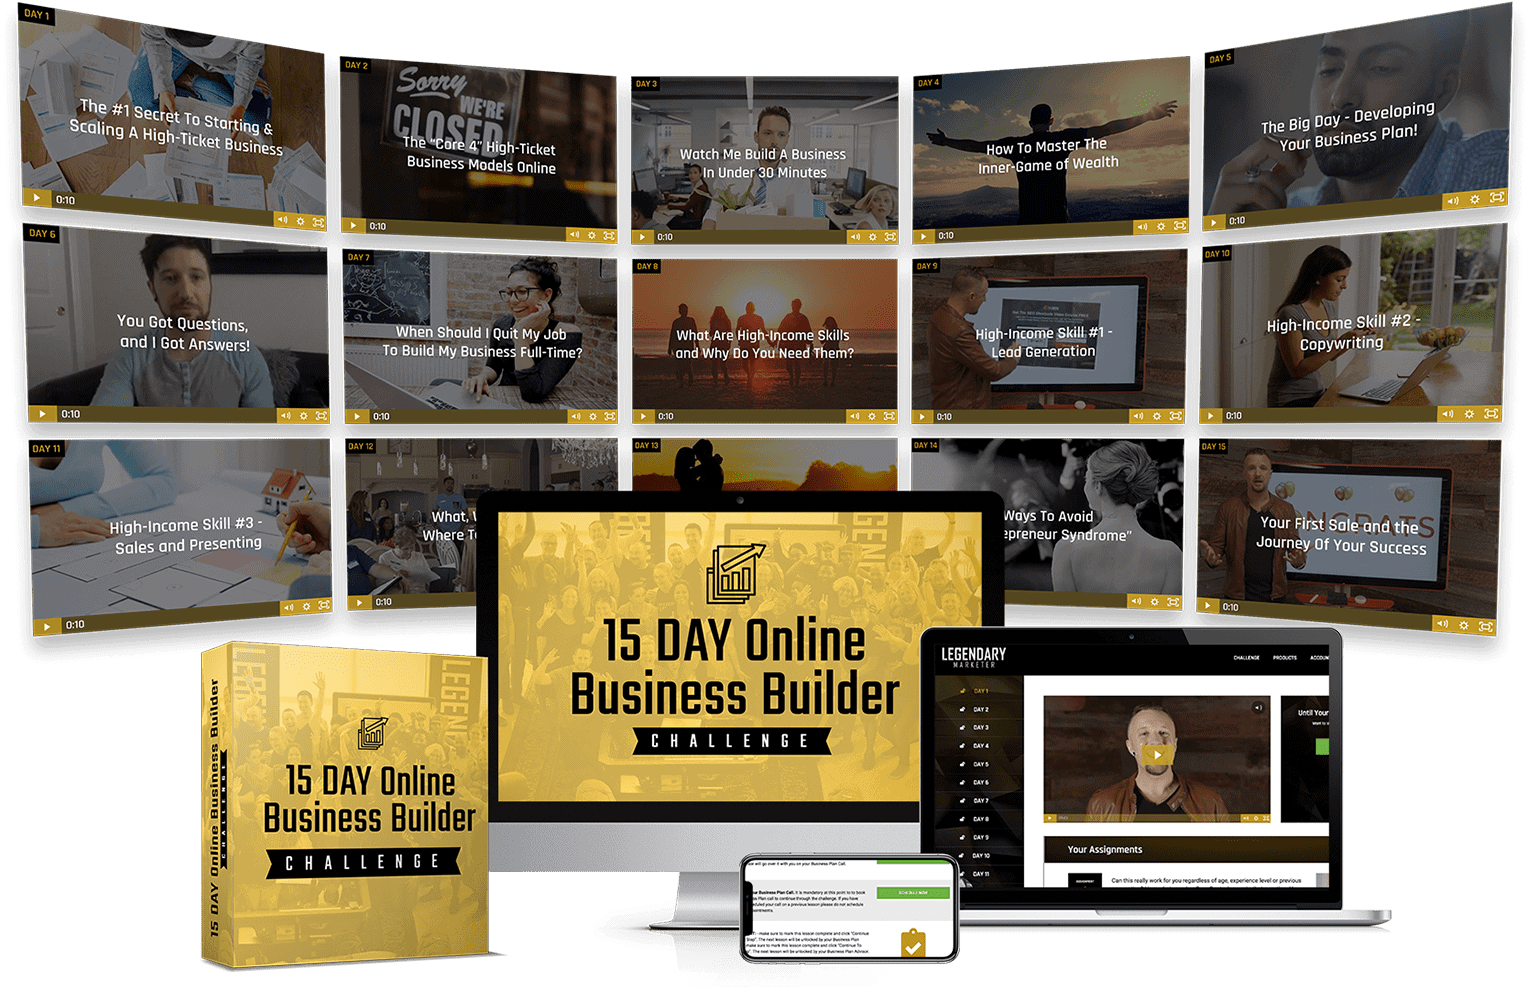 The Copywriters Playbook Review 18 The Copywriter's Playbook Review